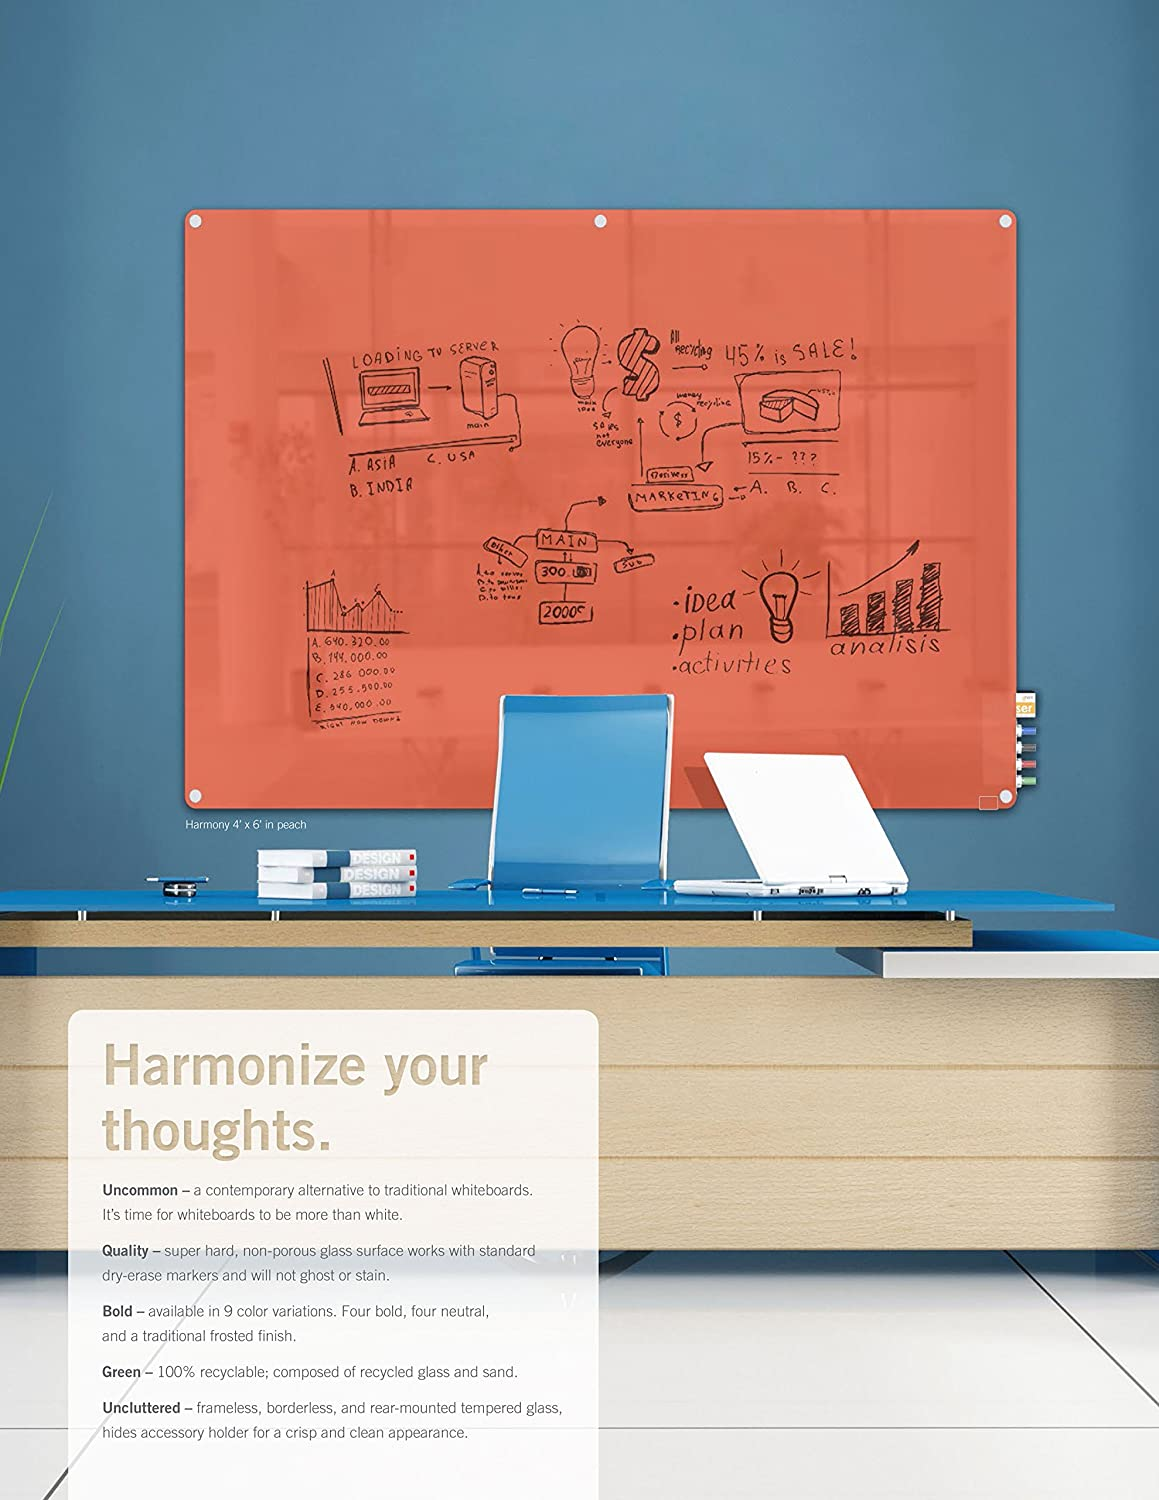 Amazon.com : 4x6 Harmony Frosted Glass Board - Radius Corners - 4 Markers and Eraser : Dry Erase Boards : Office Products